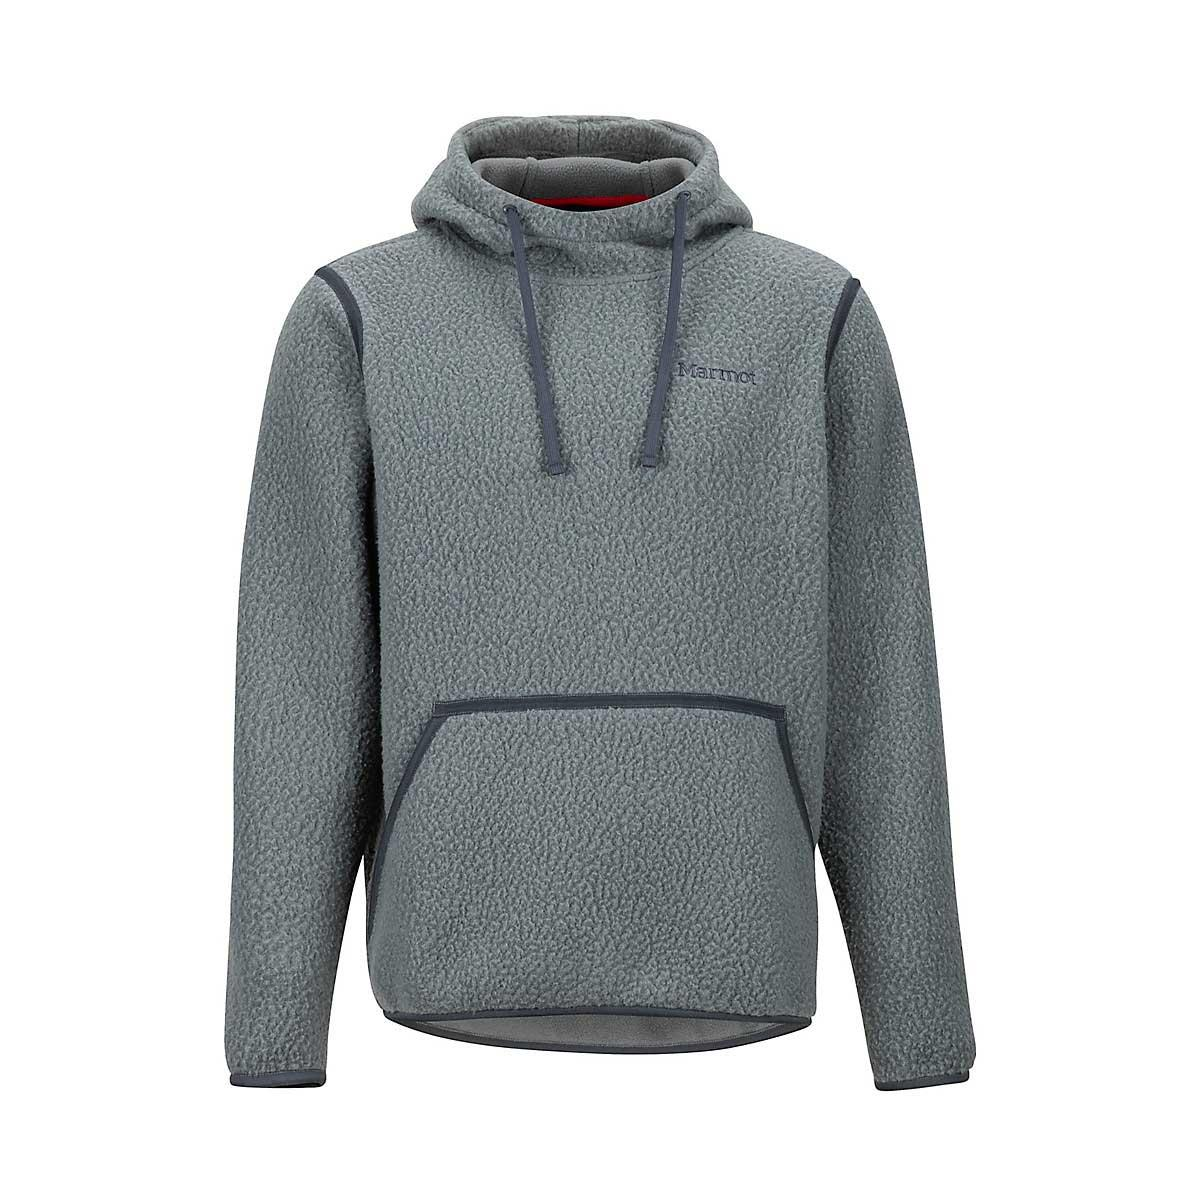 Marmot Men's Lost Corner Hoody in Cinder